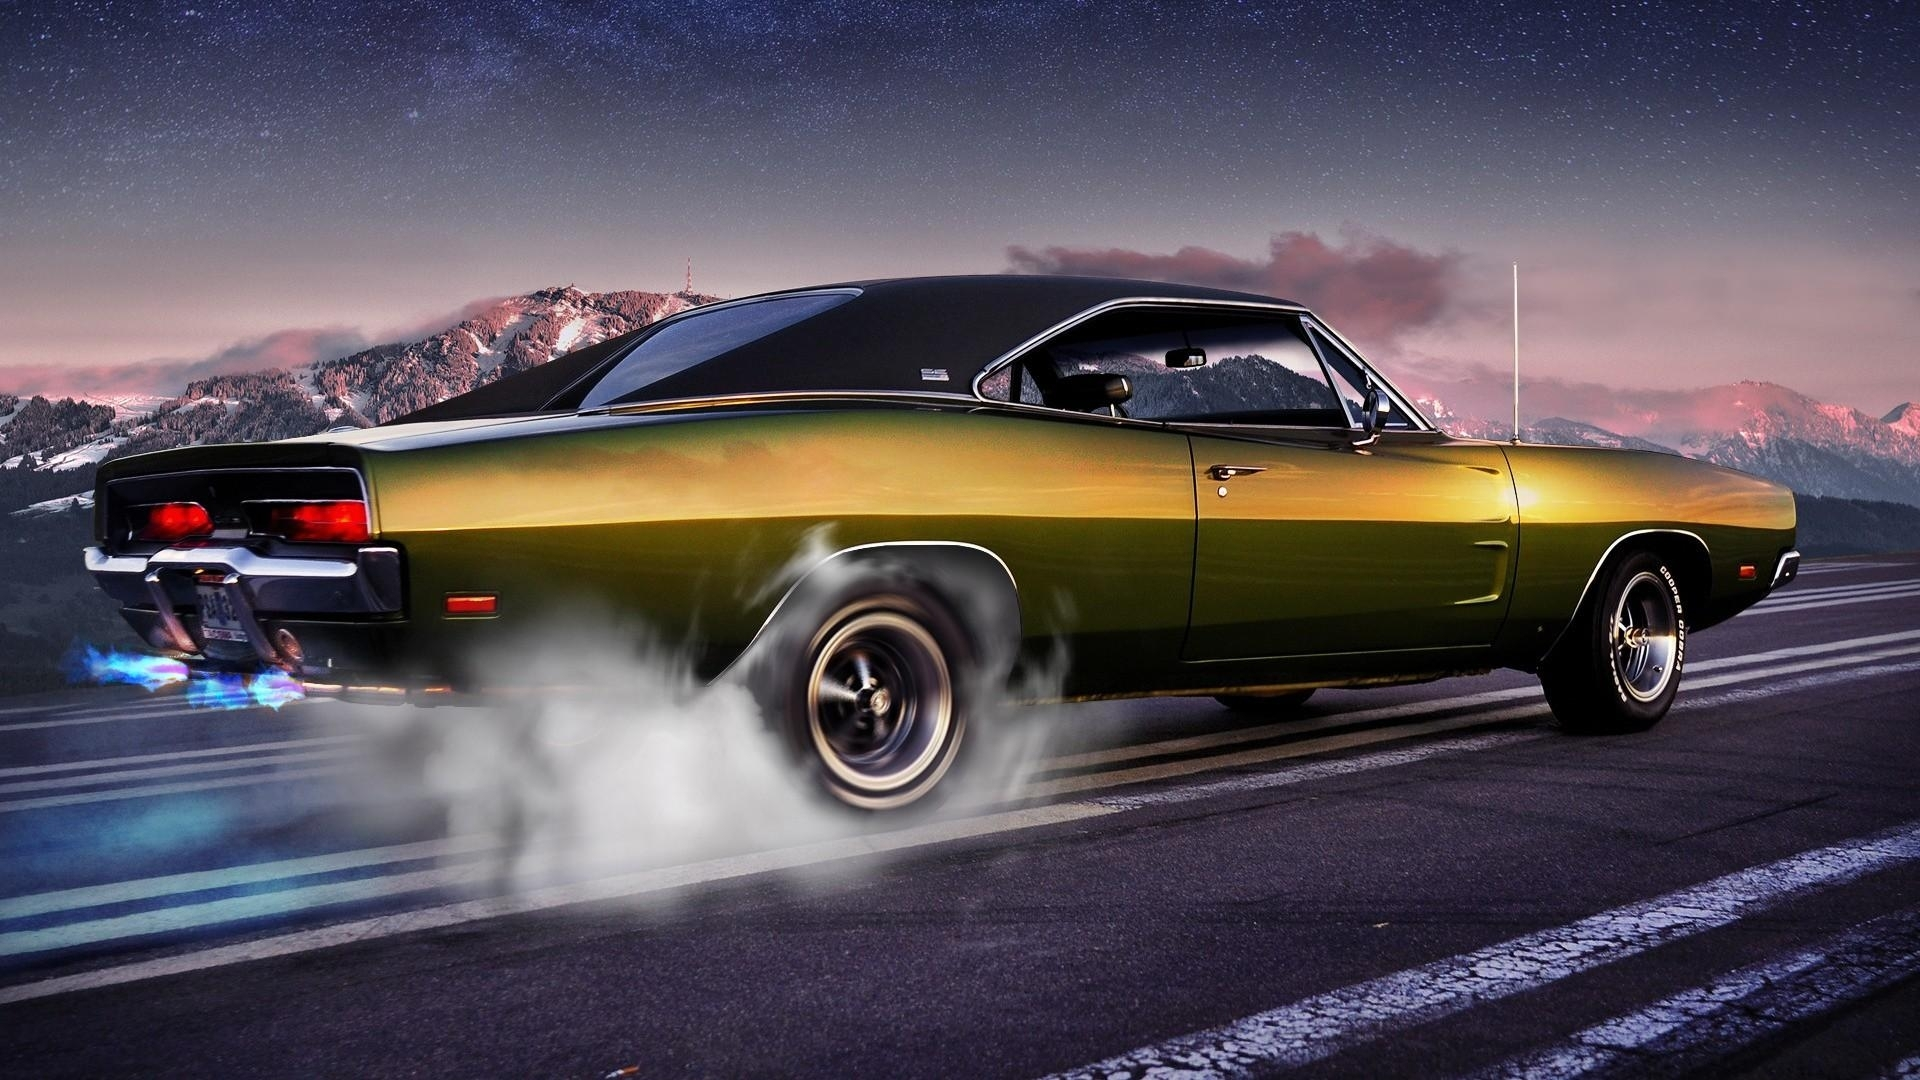 10 Latest Classic Muscle Cars Wallpapers Full Hd 1080p For Pc